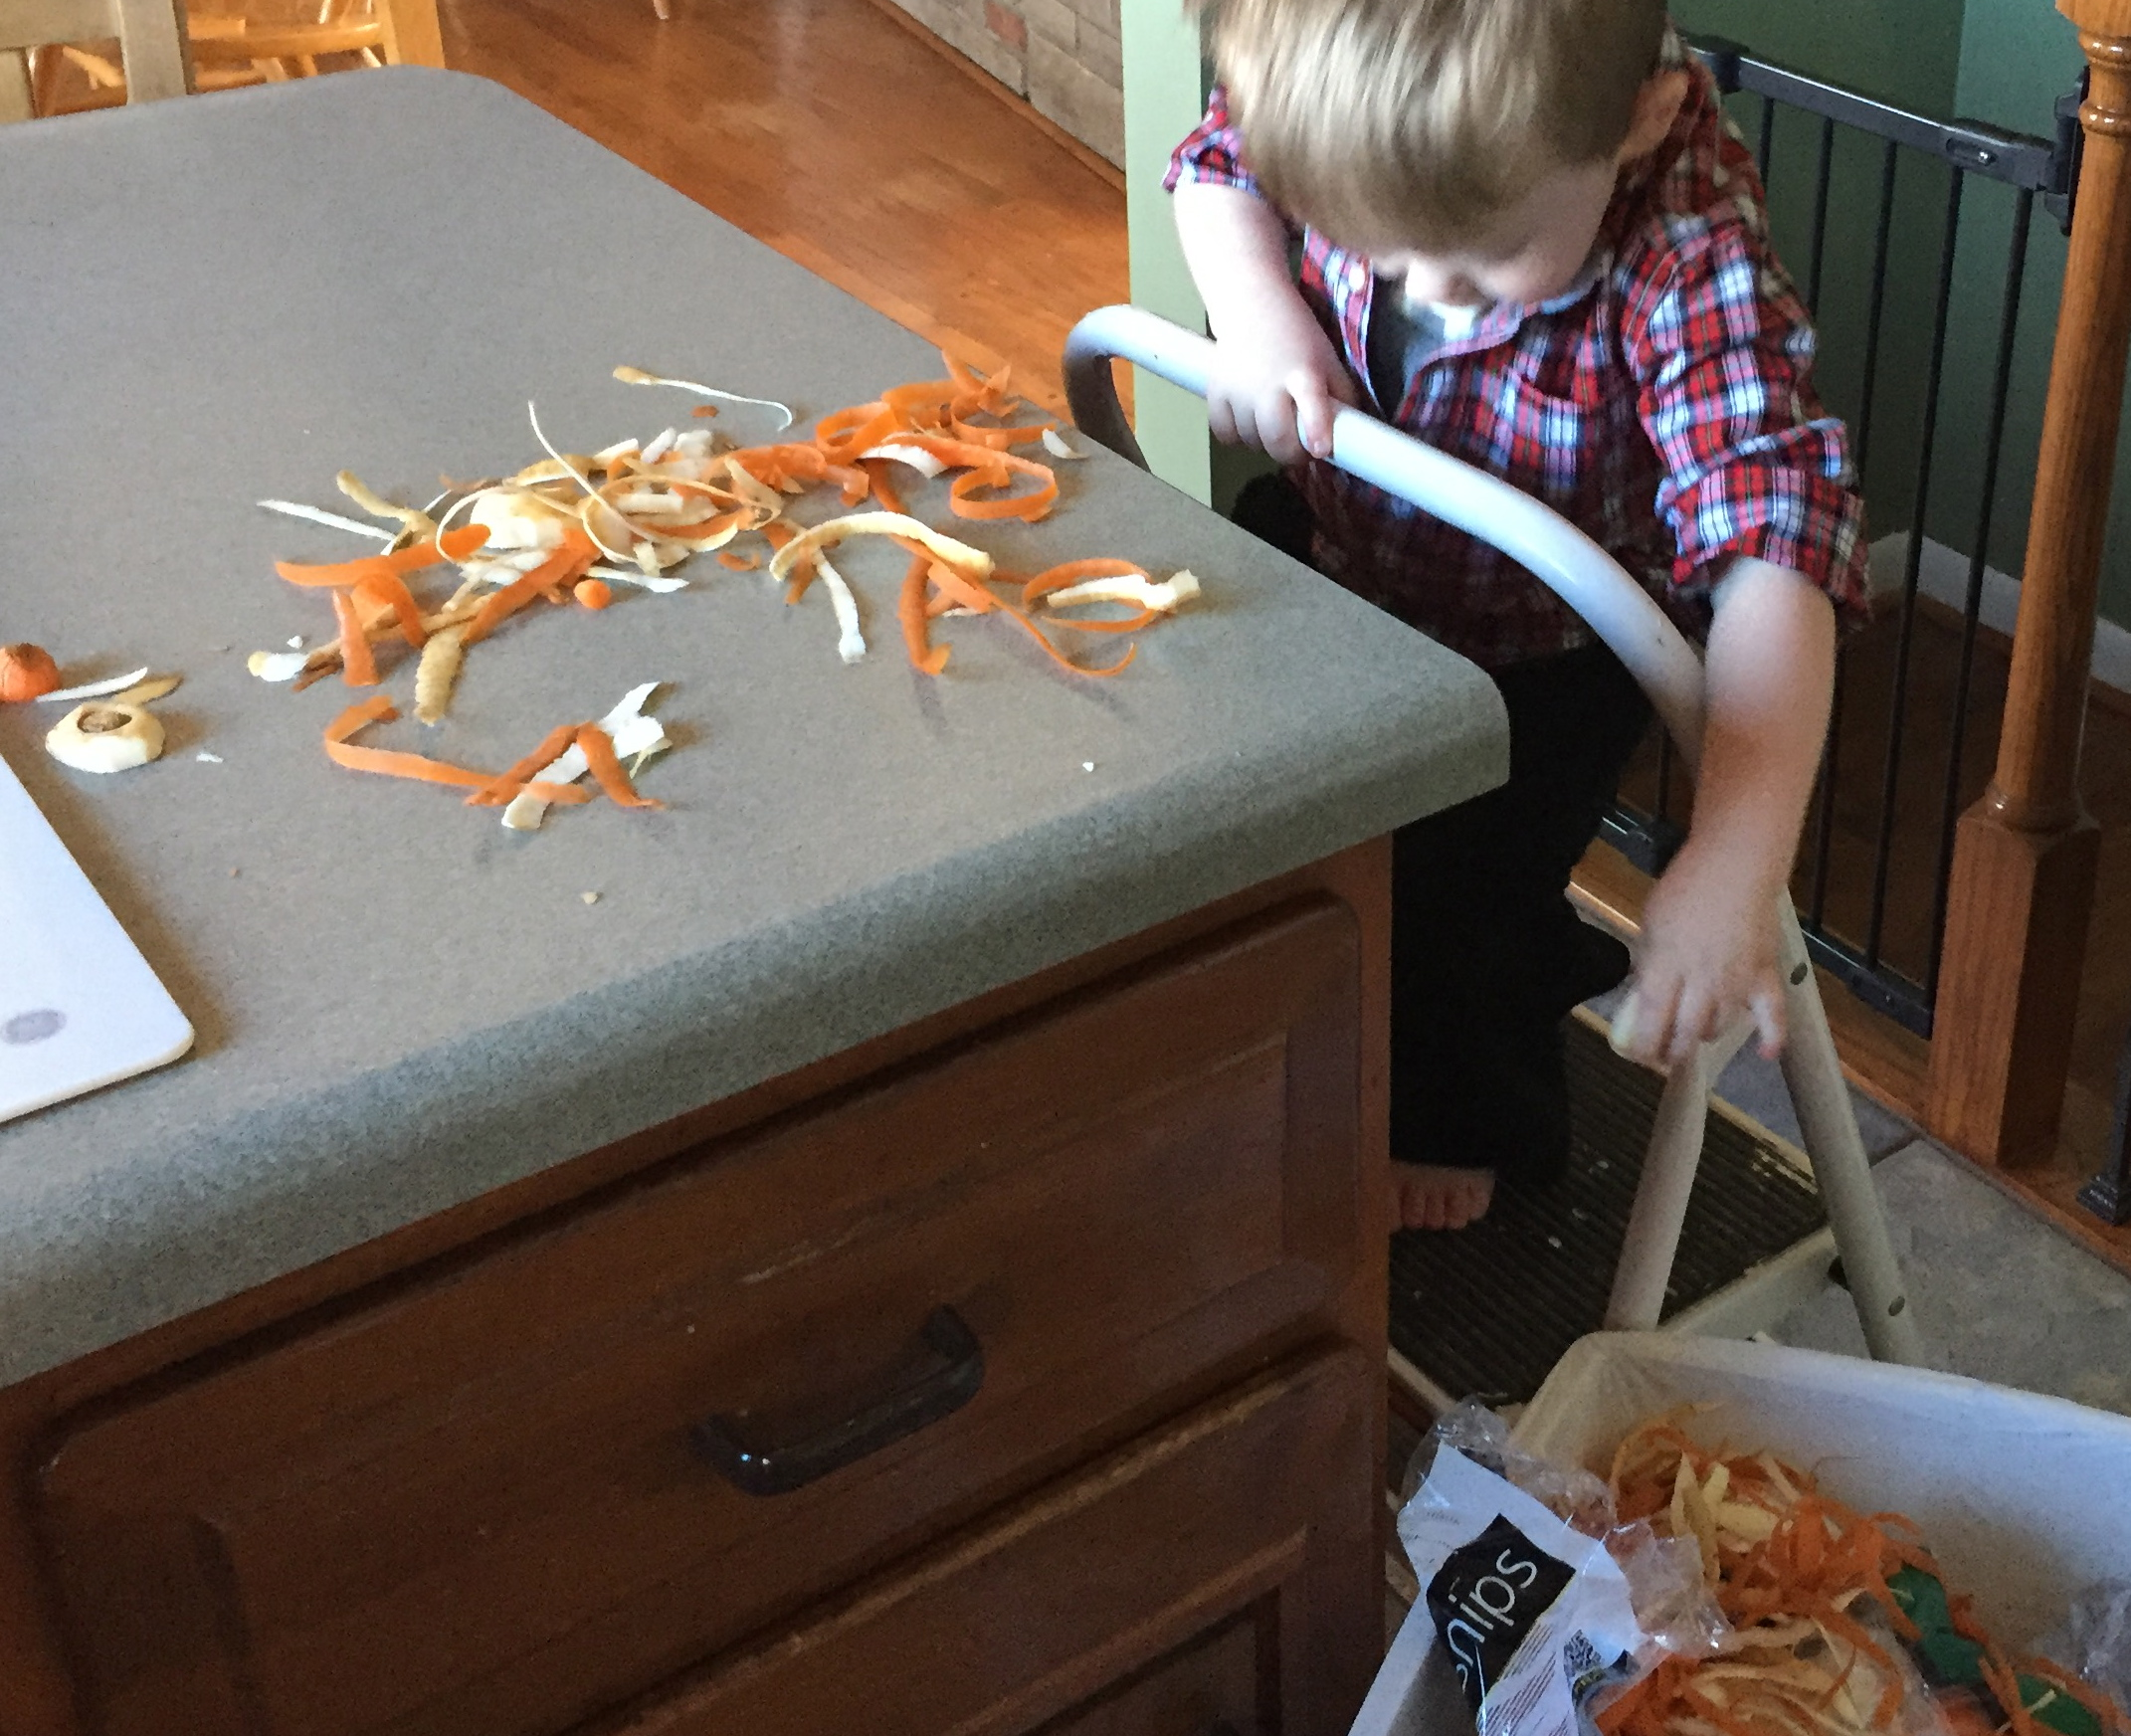 Helping clean up after peeling parsnips and carrots.